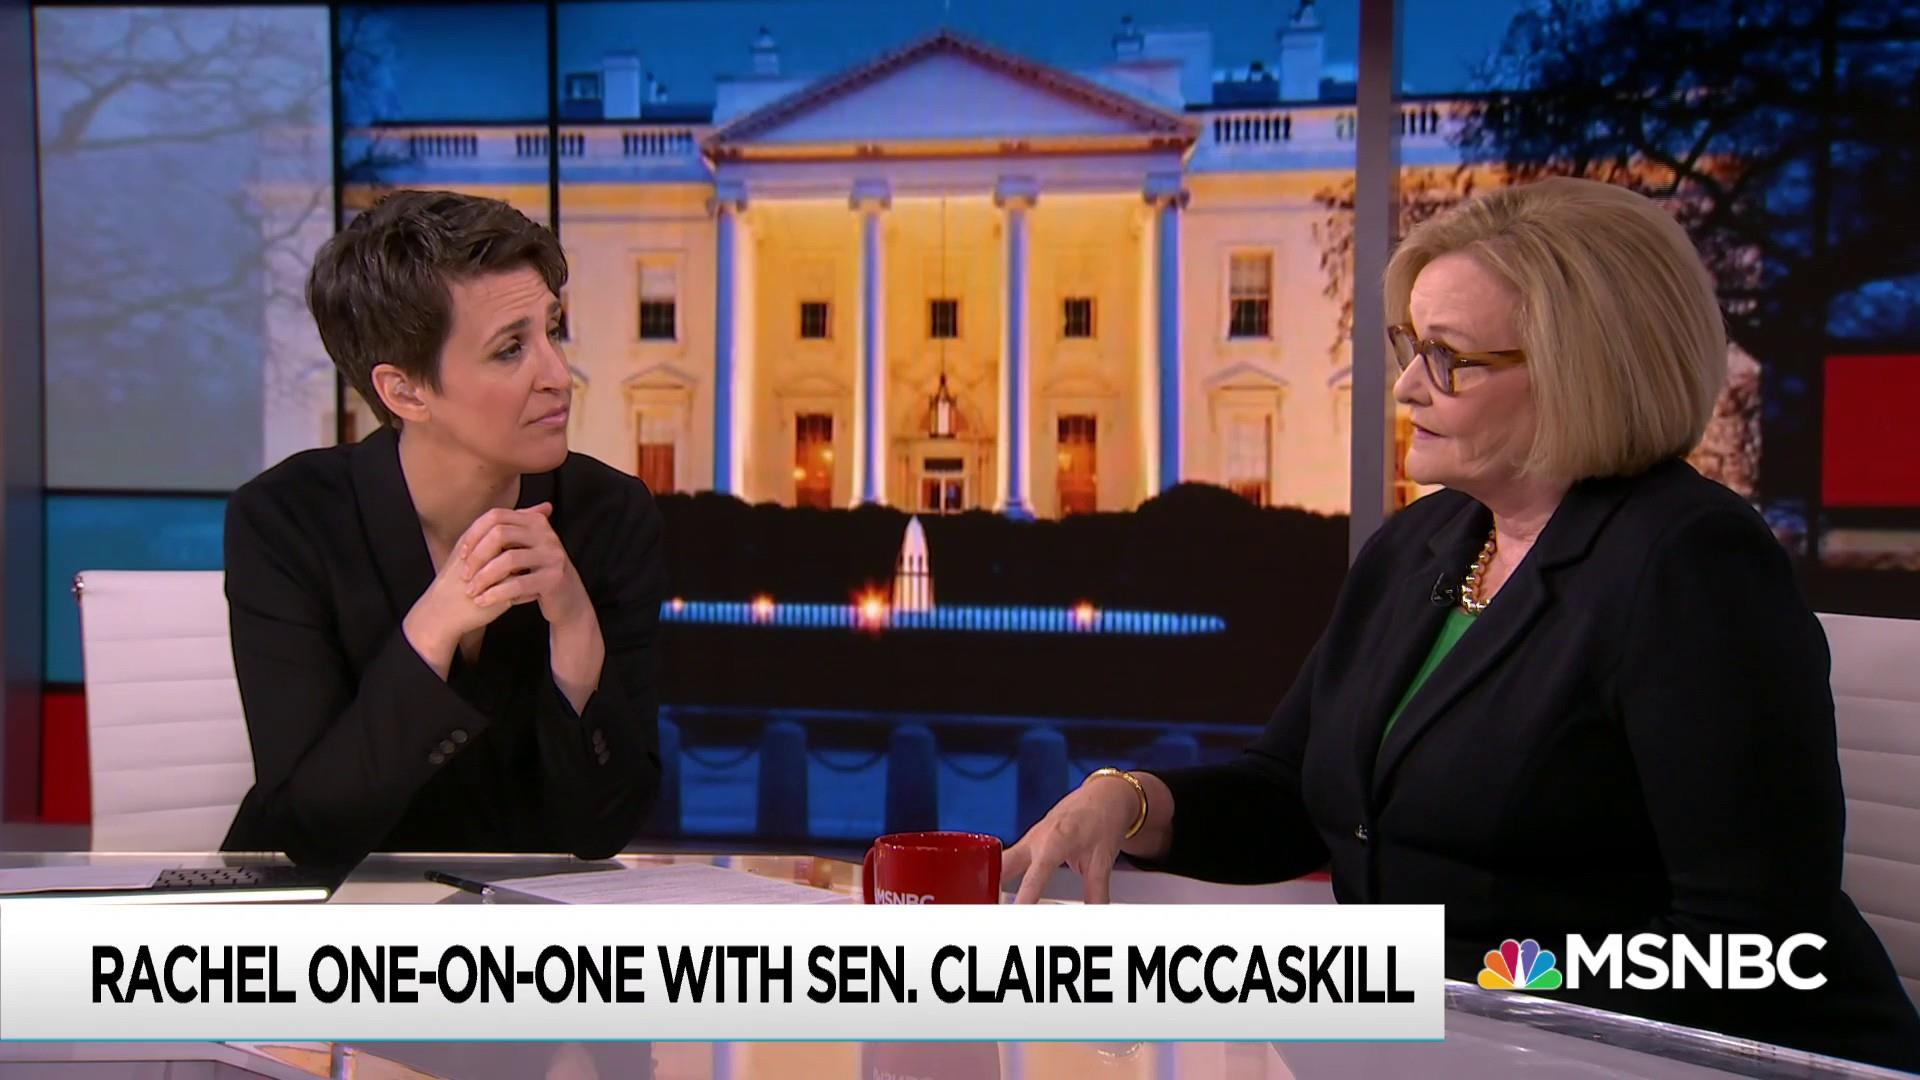 Claire McCaskill talks keeping criticism constructive